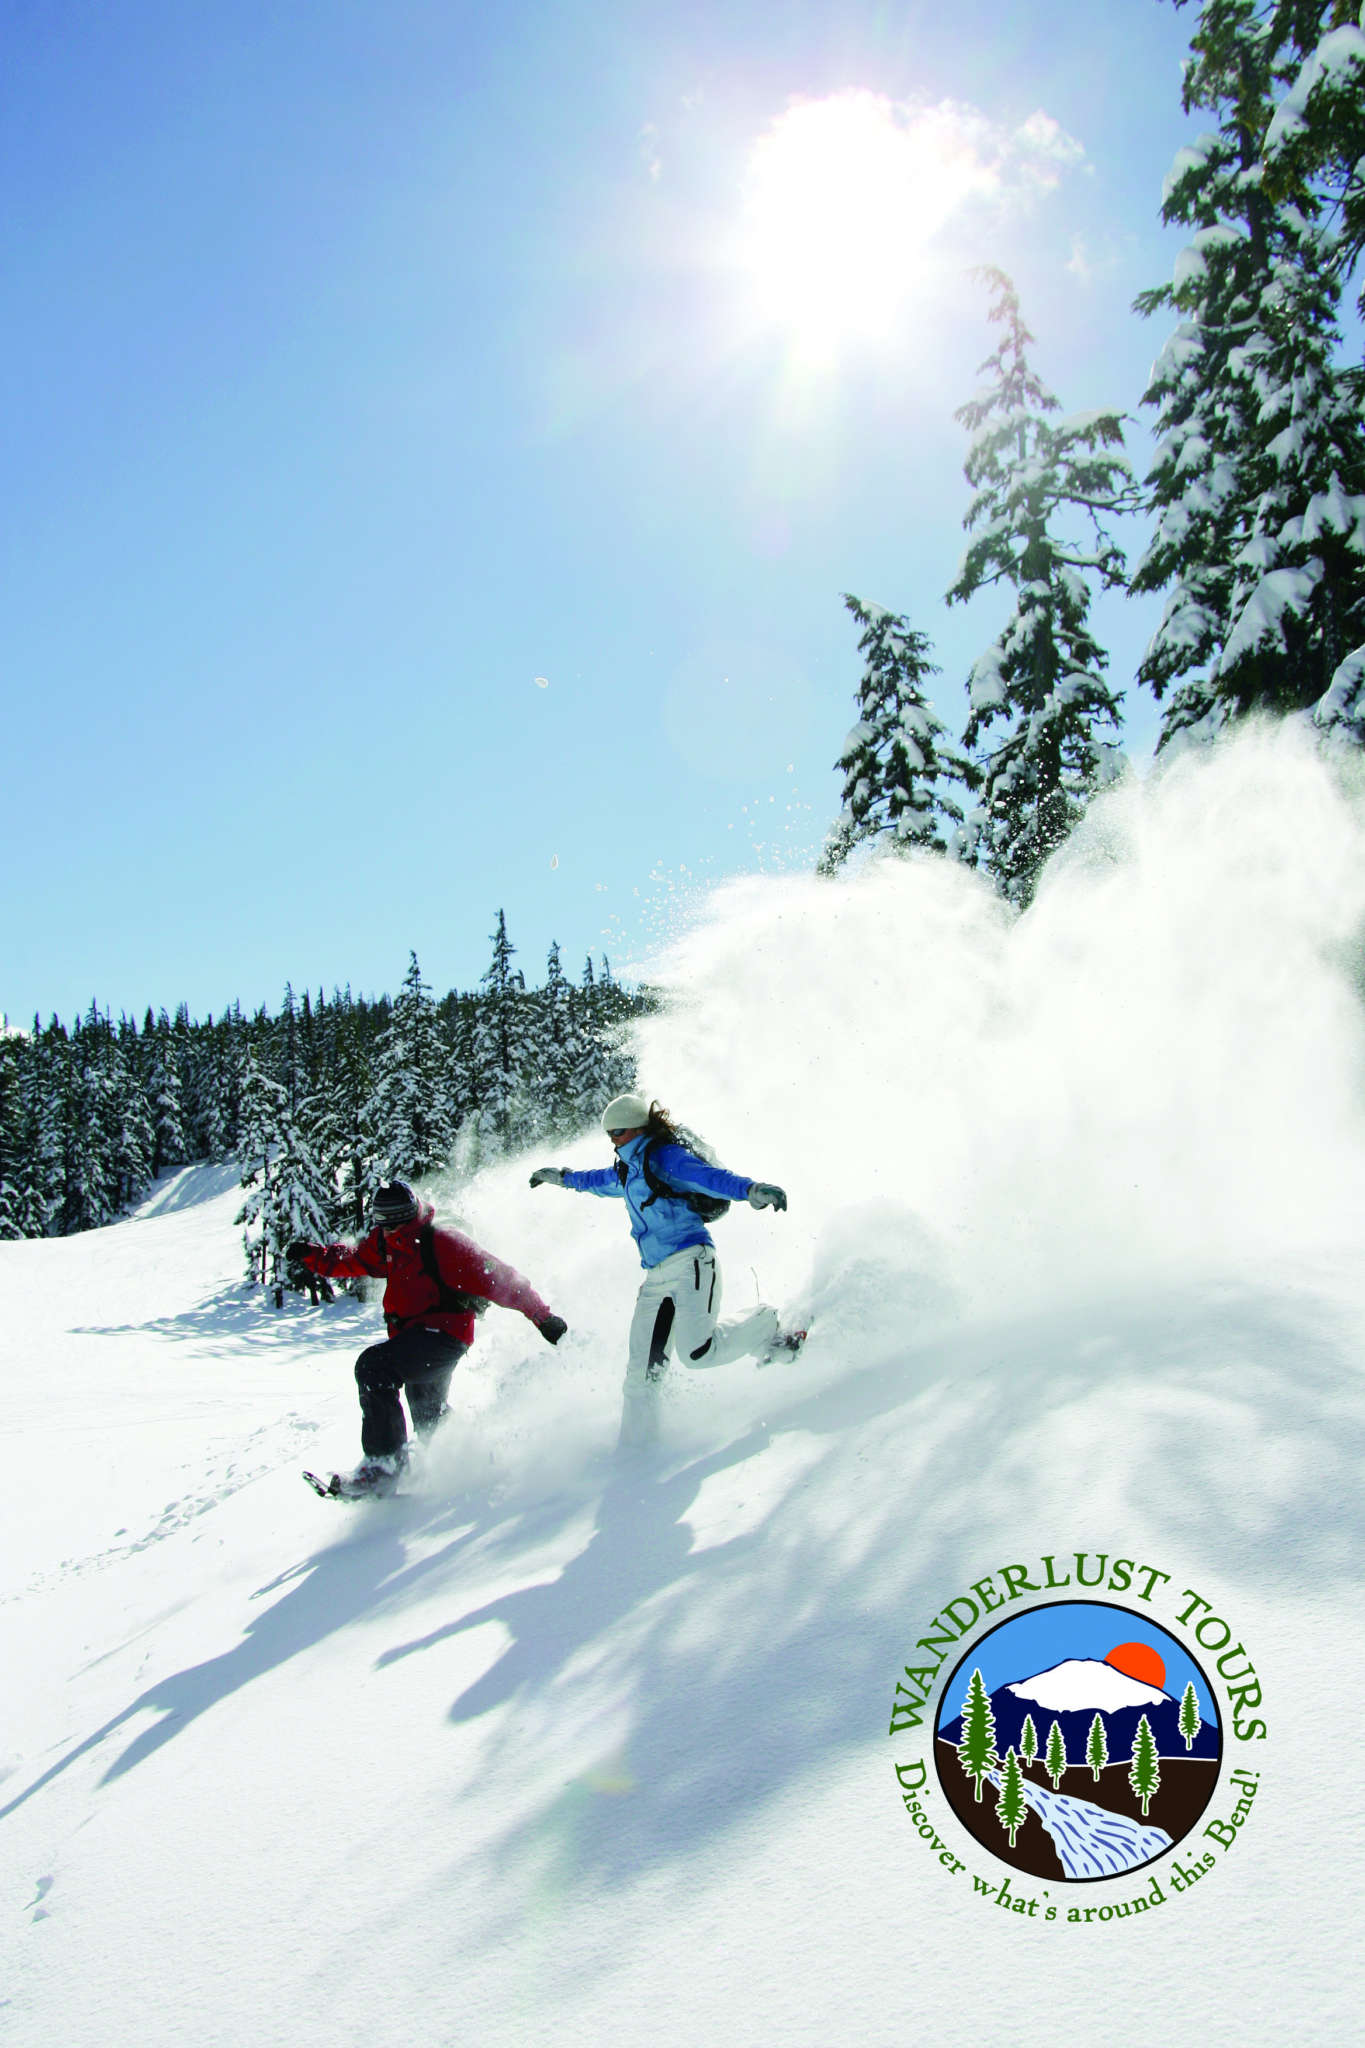 Know someone who'd like a snowshoe adventure as a stocking stuffer?